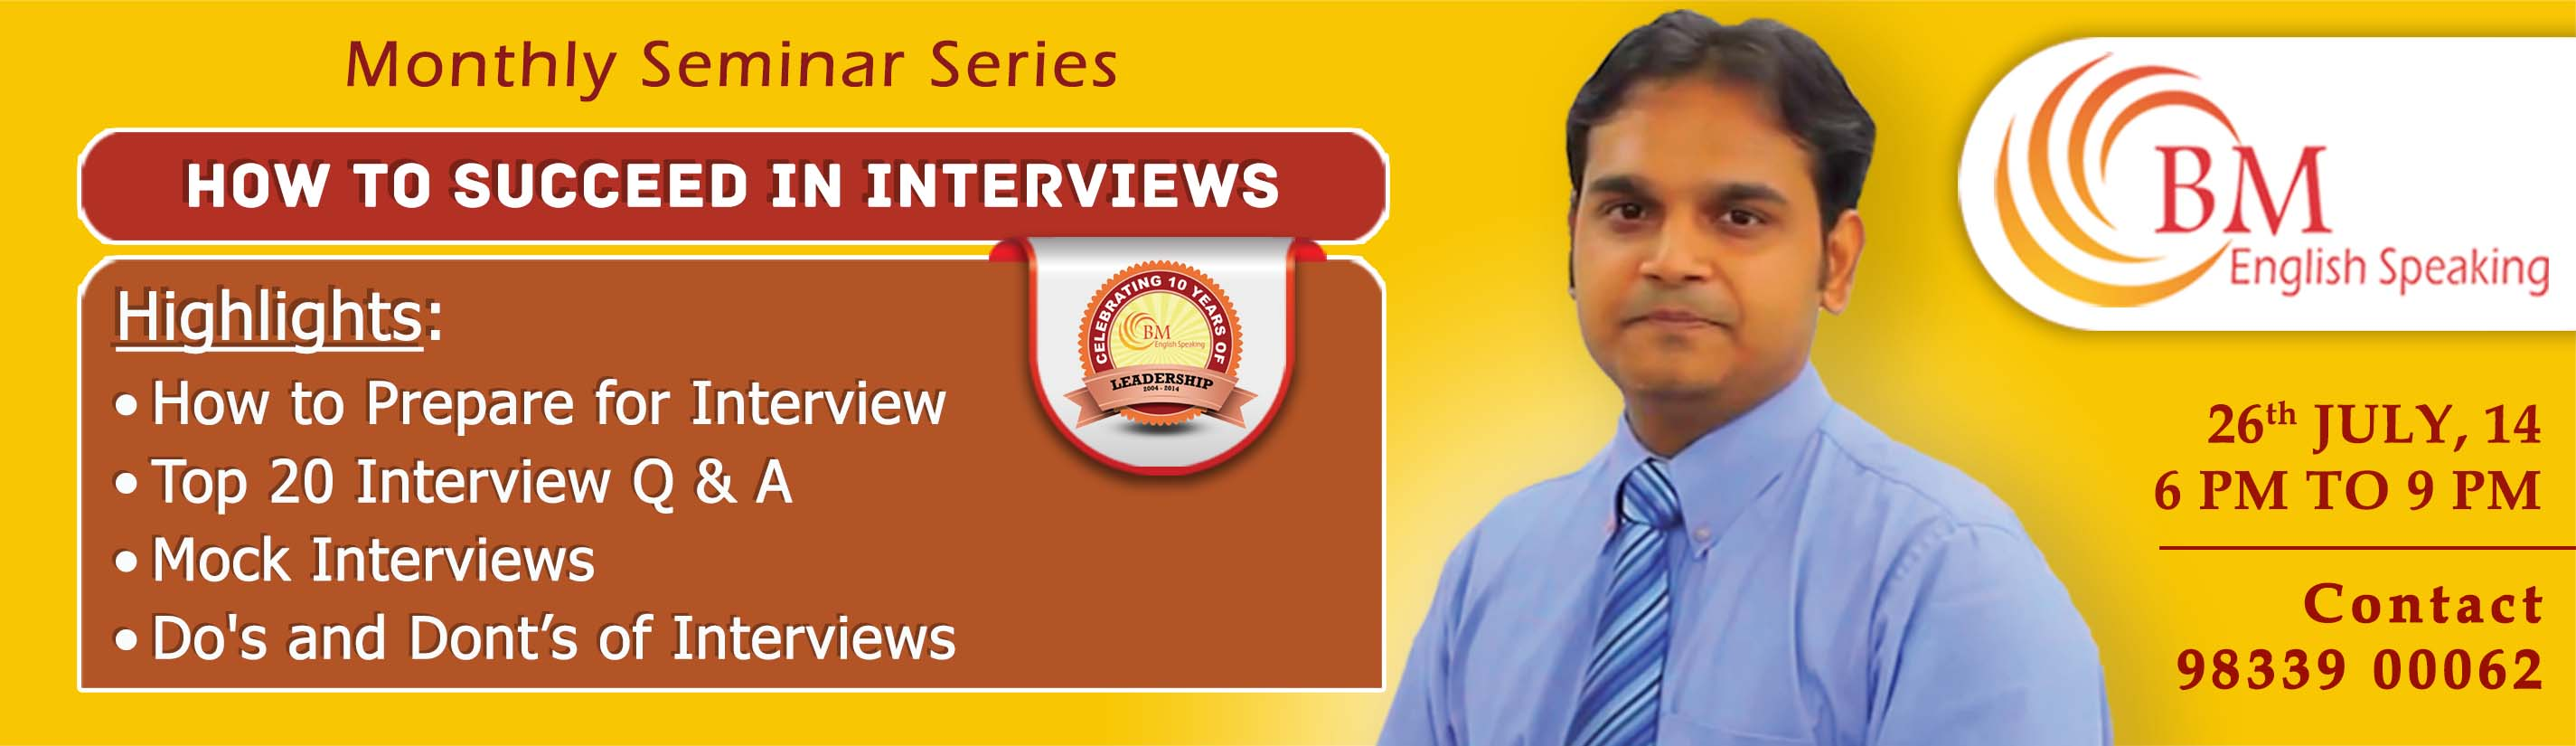 BM English presents Interview Success Seminar. How to Prepare for Interview, Top 20 Interview Q  A, Mock Interviews, Dos and Donts of Interviews.